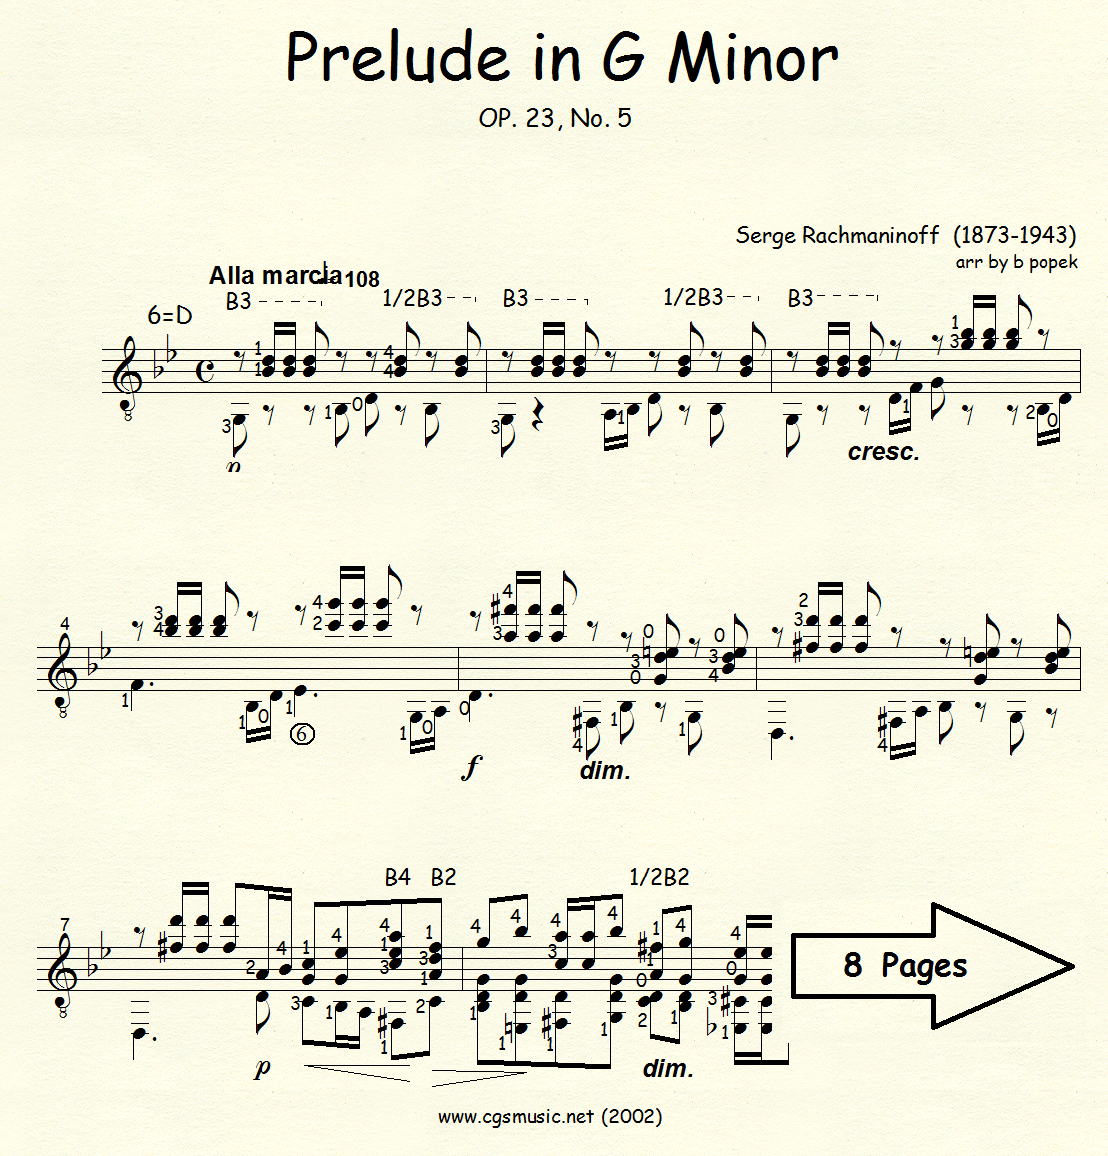 Prelude in G Minor Op 23 #5 (Rachmaninoff) for Classical Guitar in Standard Notation